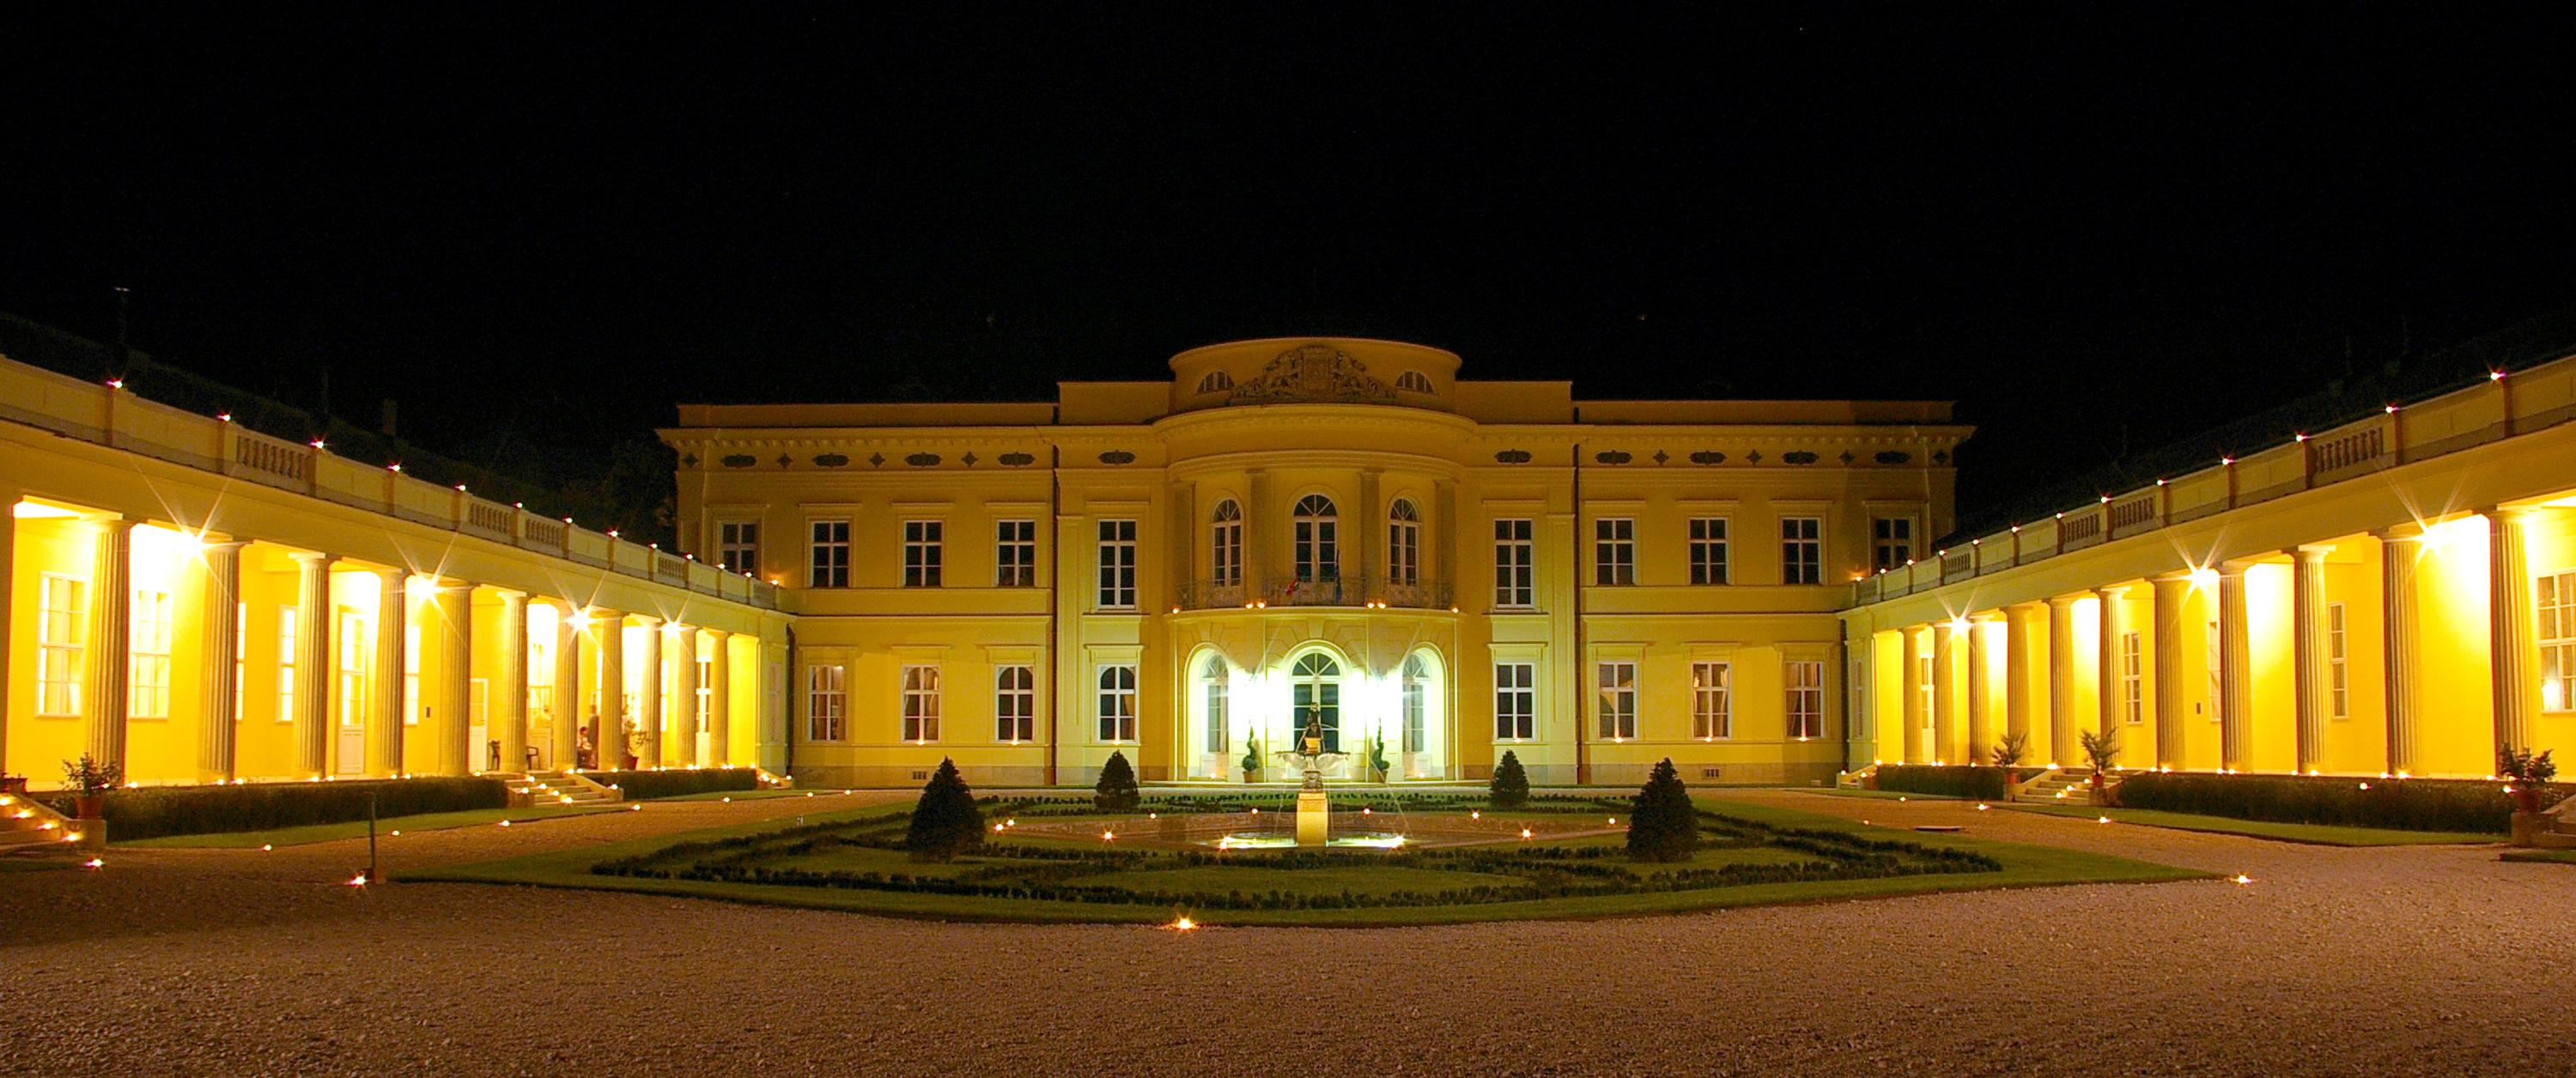 European String Quartet Festival, Károlyi Castle, Hungary, 25 - 27 September